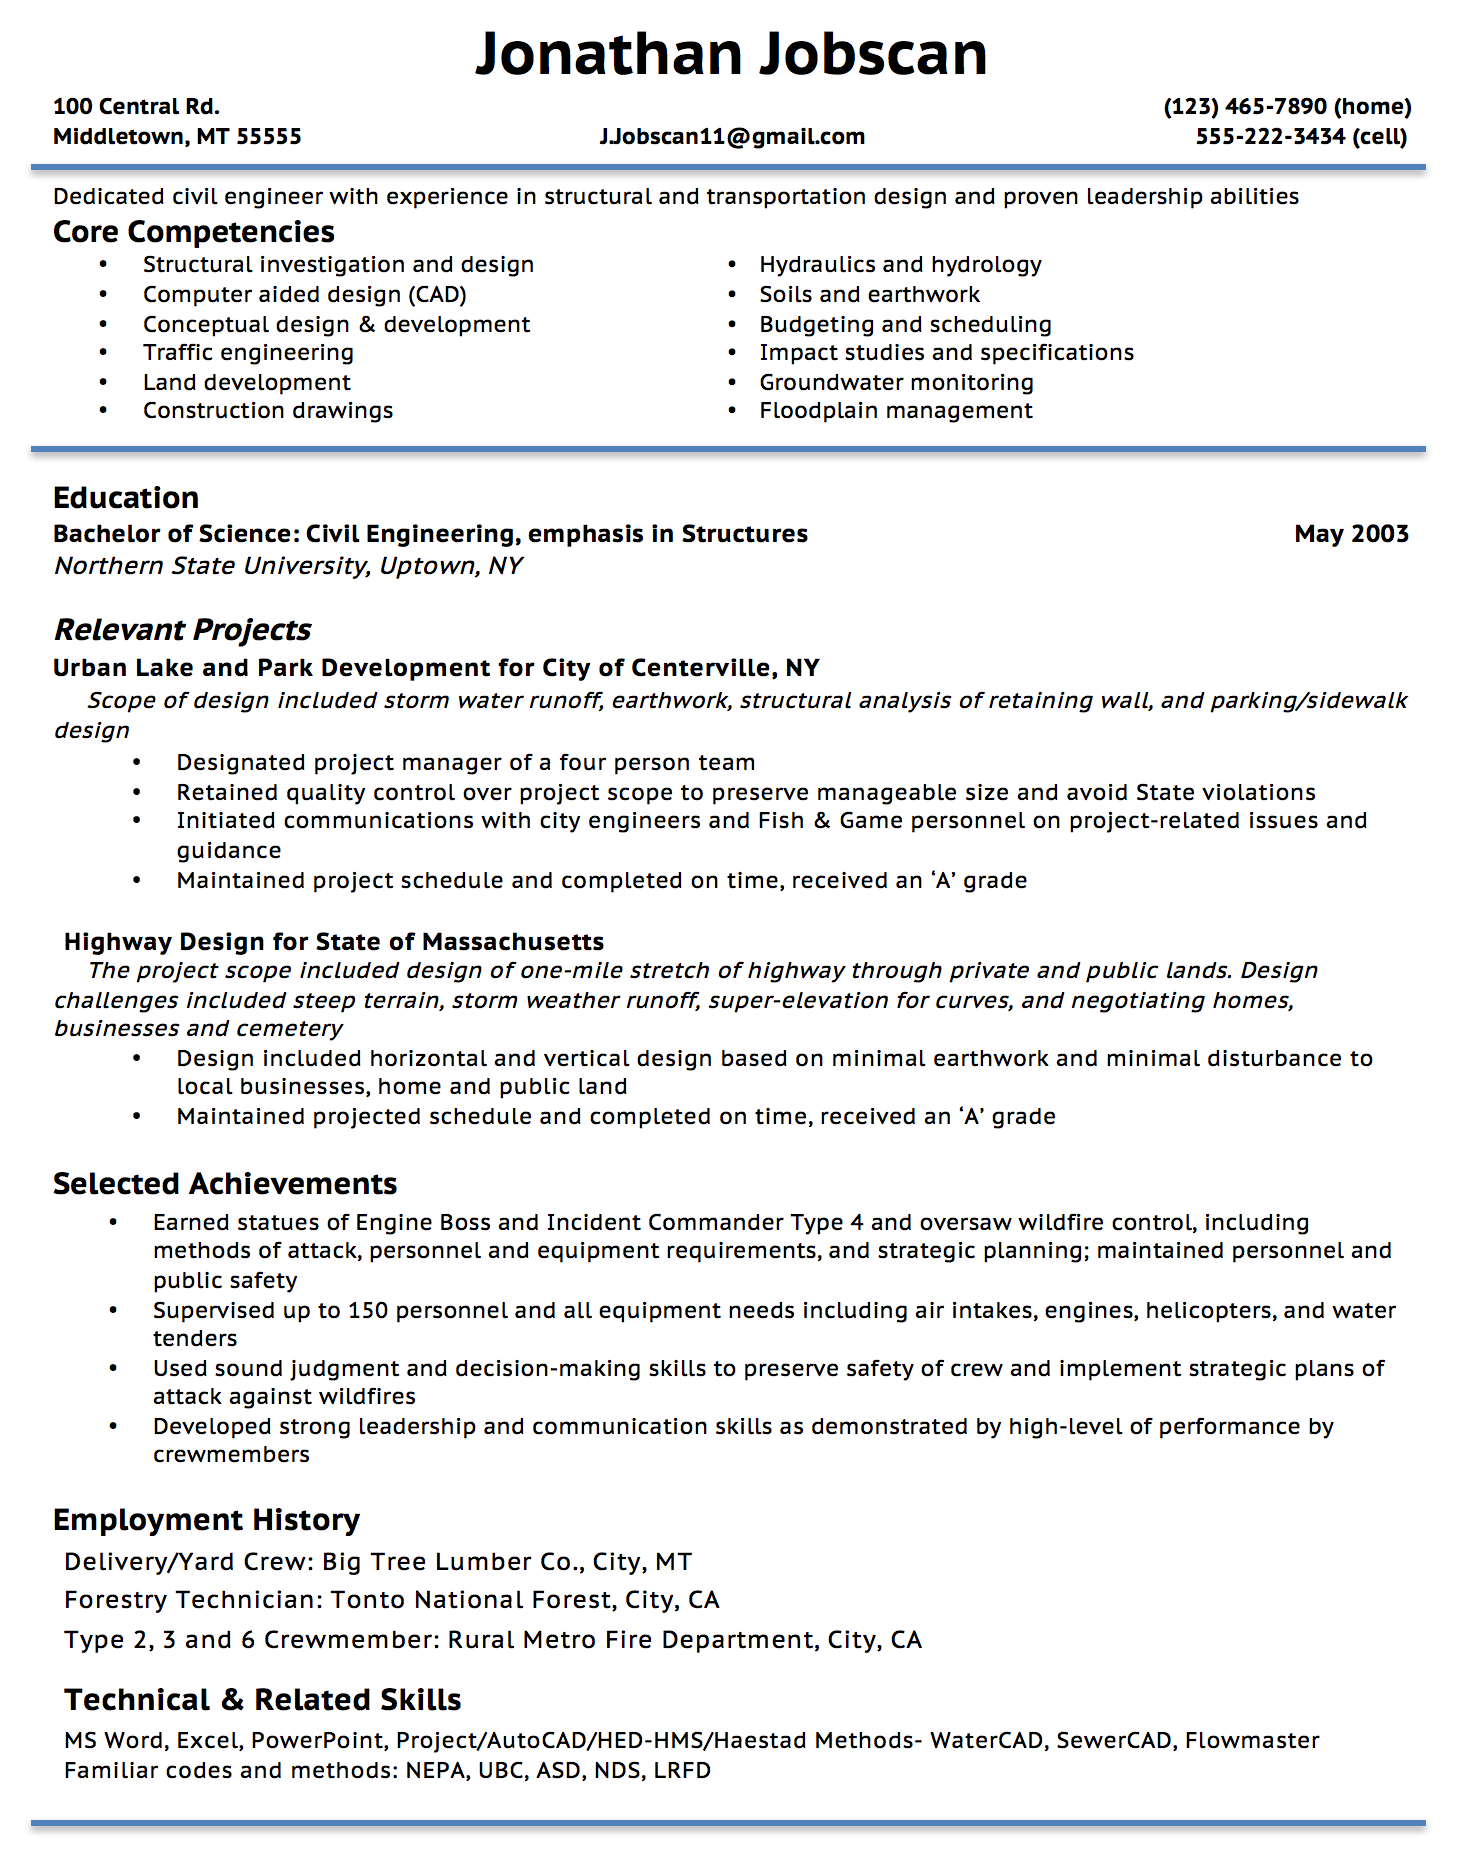 Opposenewapstandardsus  Sweet Resume Writing Guide  Jobscan With Licious Example Of A Functional Resume Format With Delectable Marketing Resume Sample Also How To Write A Resume And Cover Letter In Addition College Student Resumes And Resume Writers Online As Well As Experience Section Of Resume Additionally Example Student Resume From Jobscanco With Opposenewapstandardsus  Licious Resume Writing Guide  Jobscan With Delectable Example Of A Functional Resume Format And Sweet Marketing Resume Sample Also How To Write A Resume And Cover Letter In Addition College Student Resumes From Jobscanco